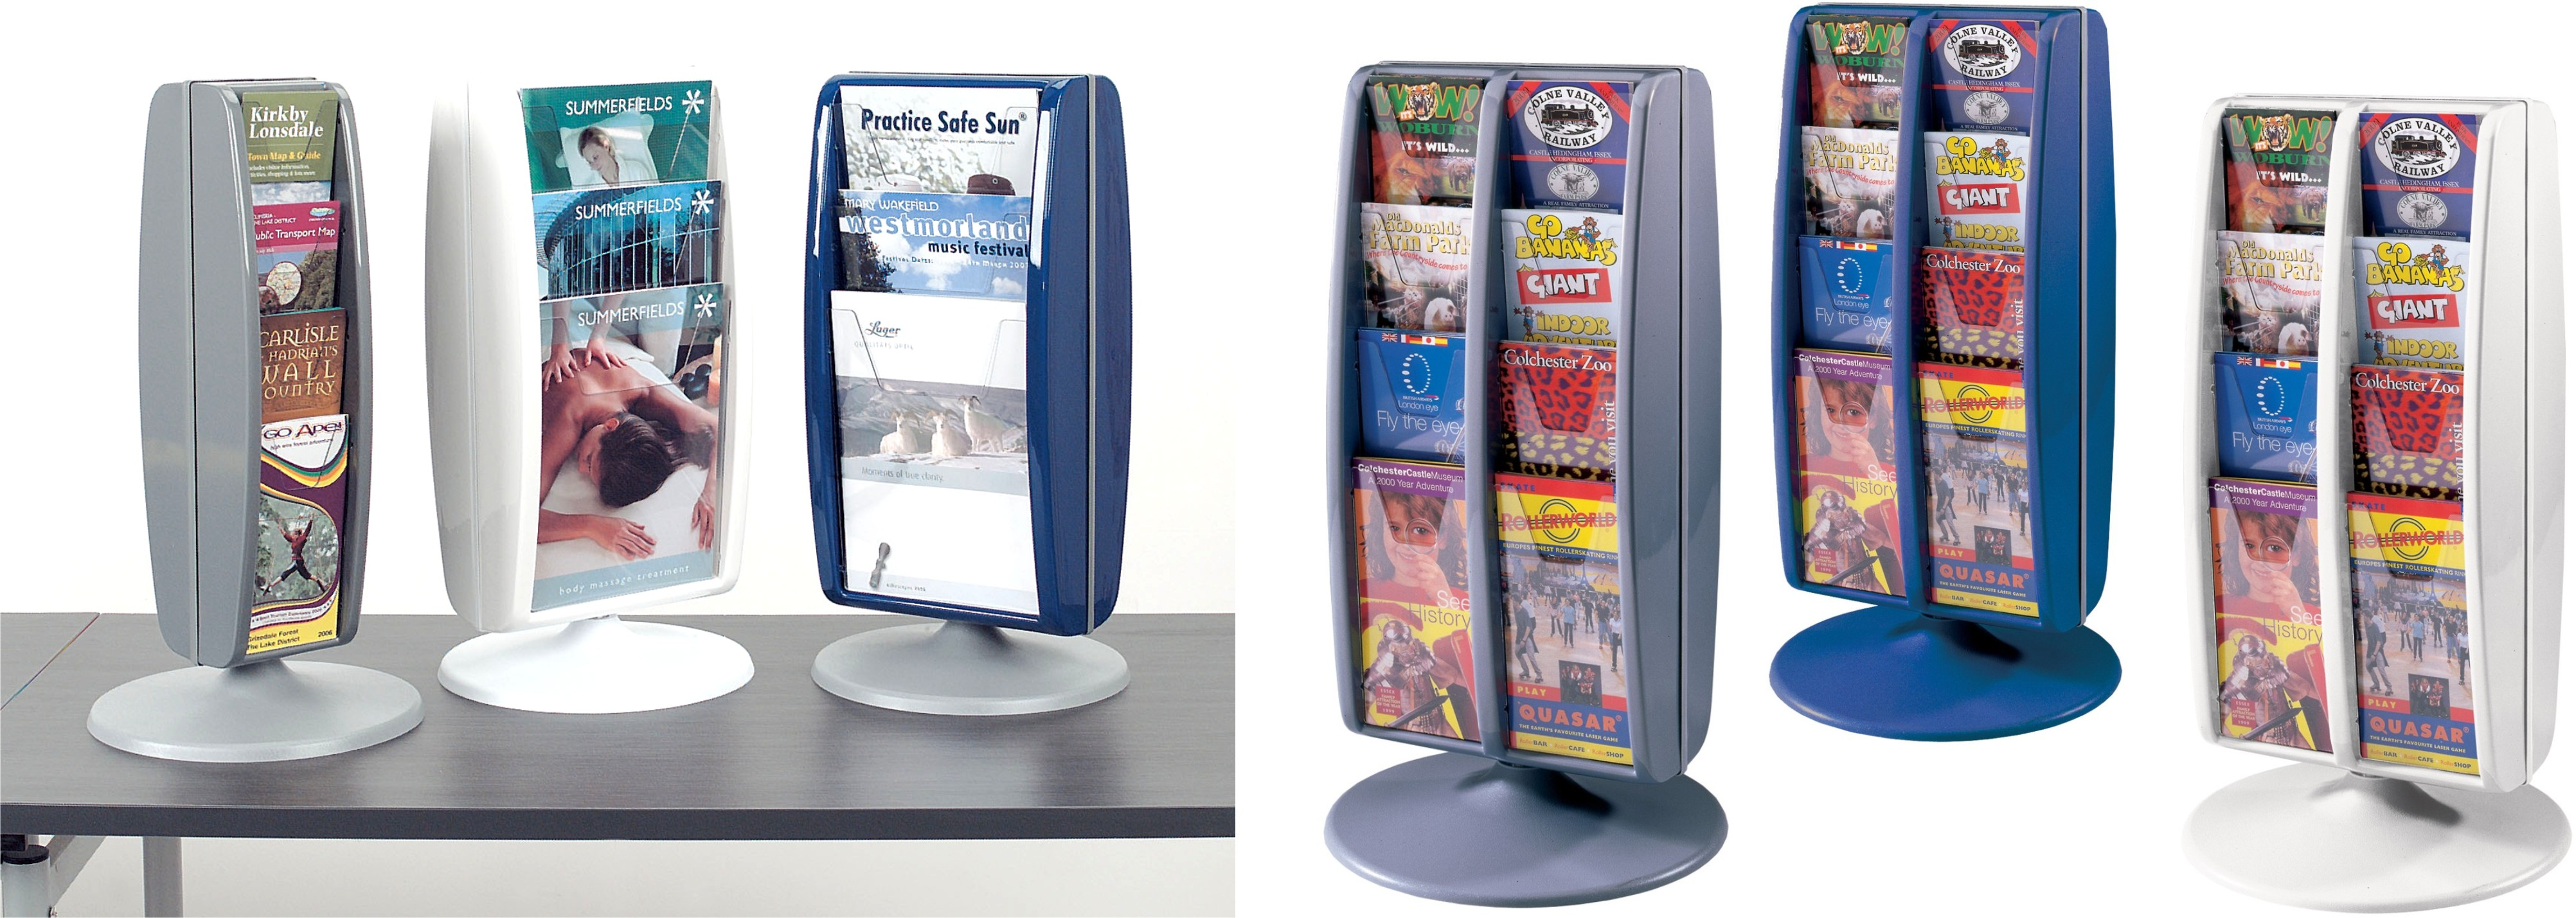 Panorama Desktop Leaflet Dispensers